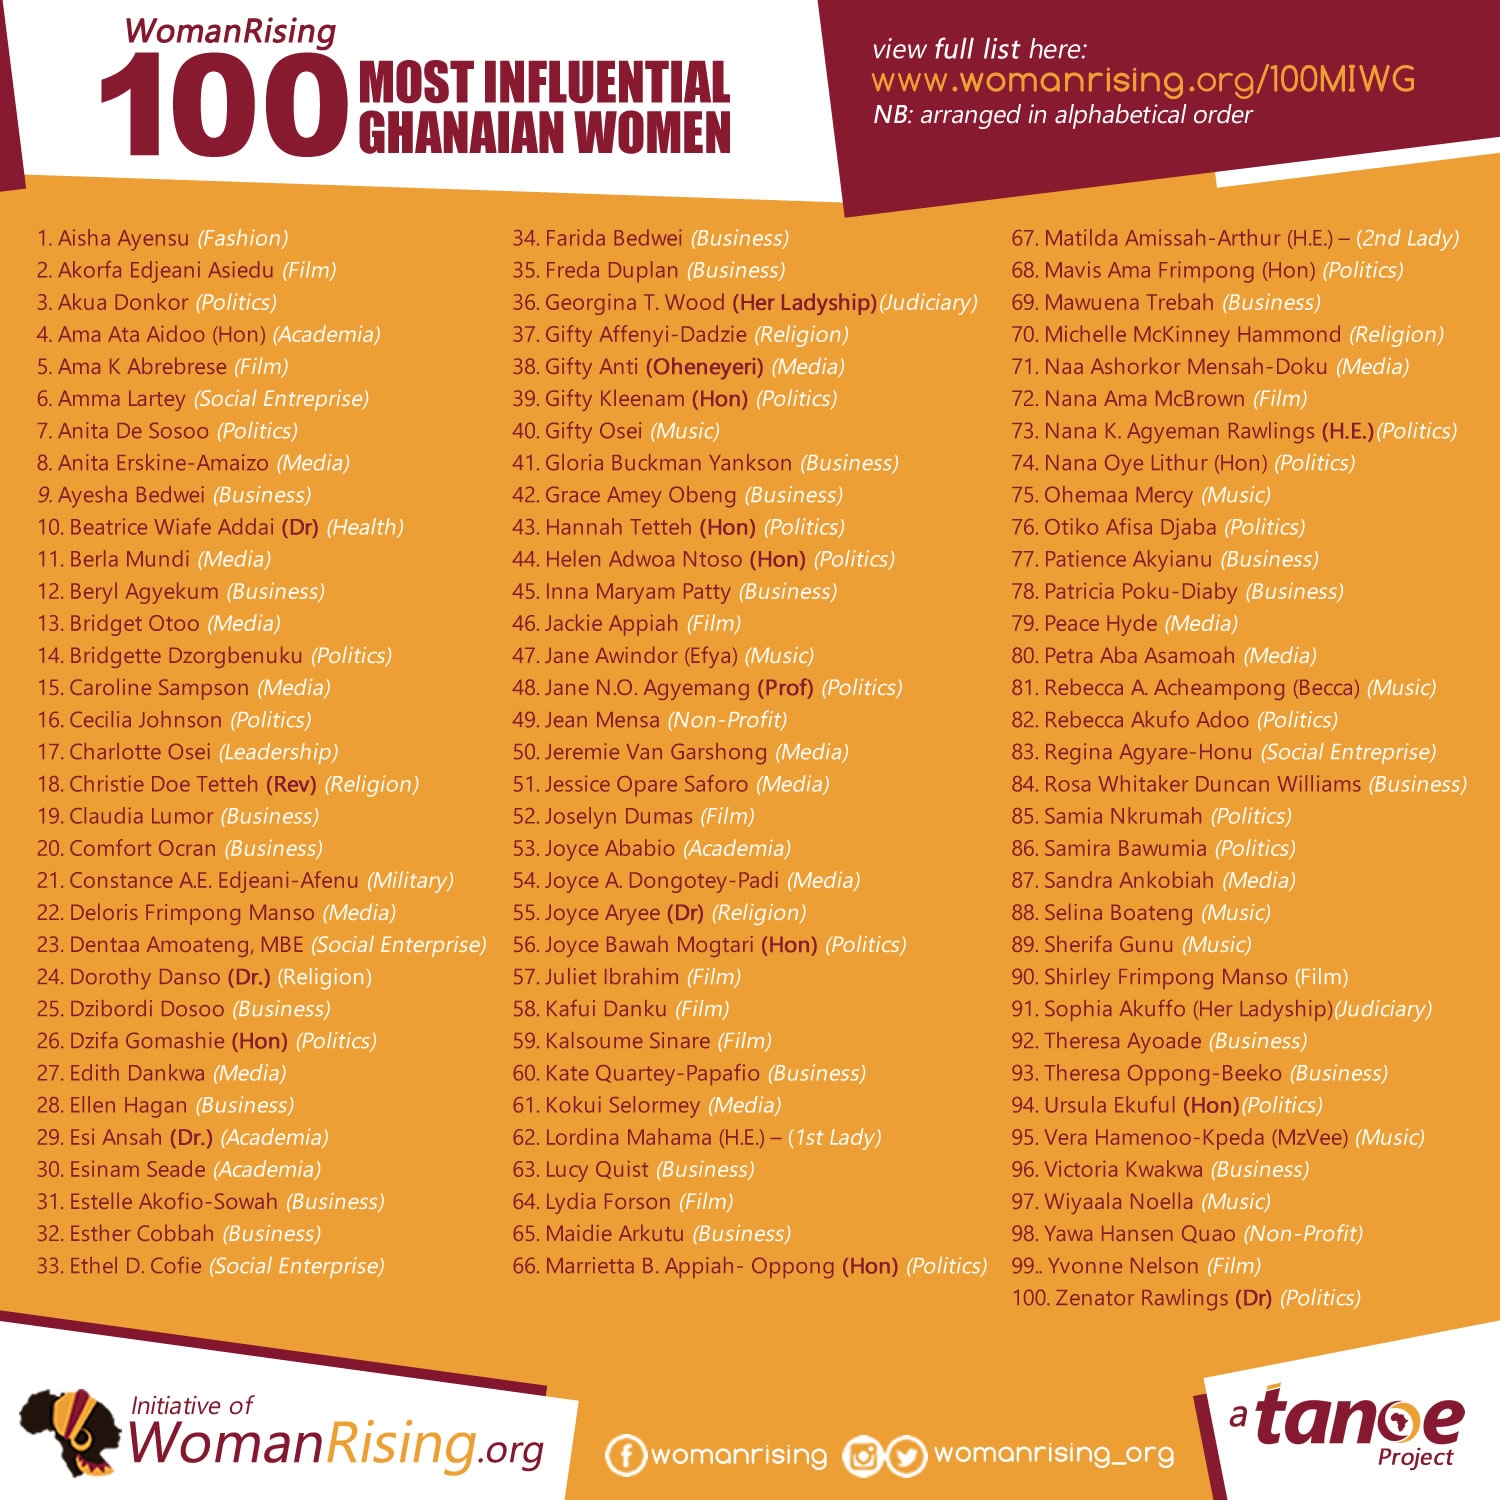 100 MOST INFLUENTIAL WOMEN